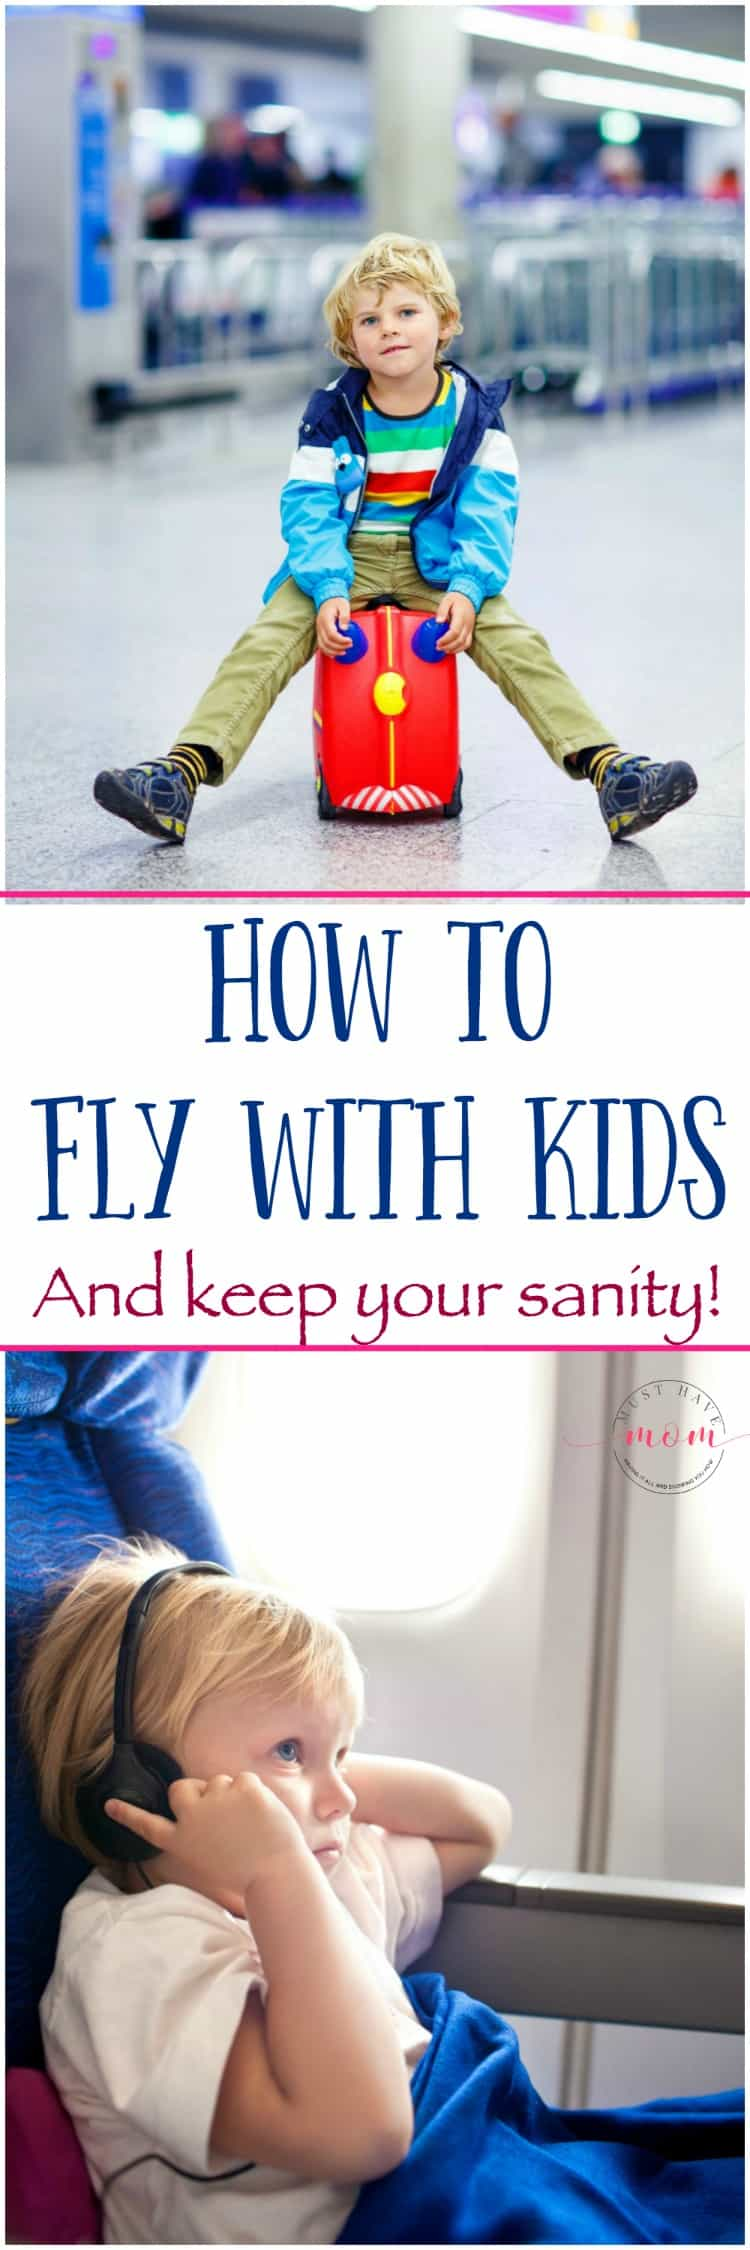 Travel with kids: how to fly with kids and keep your sanity! Travel tips for airplane trips with kids.